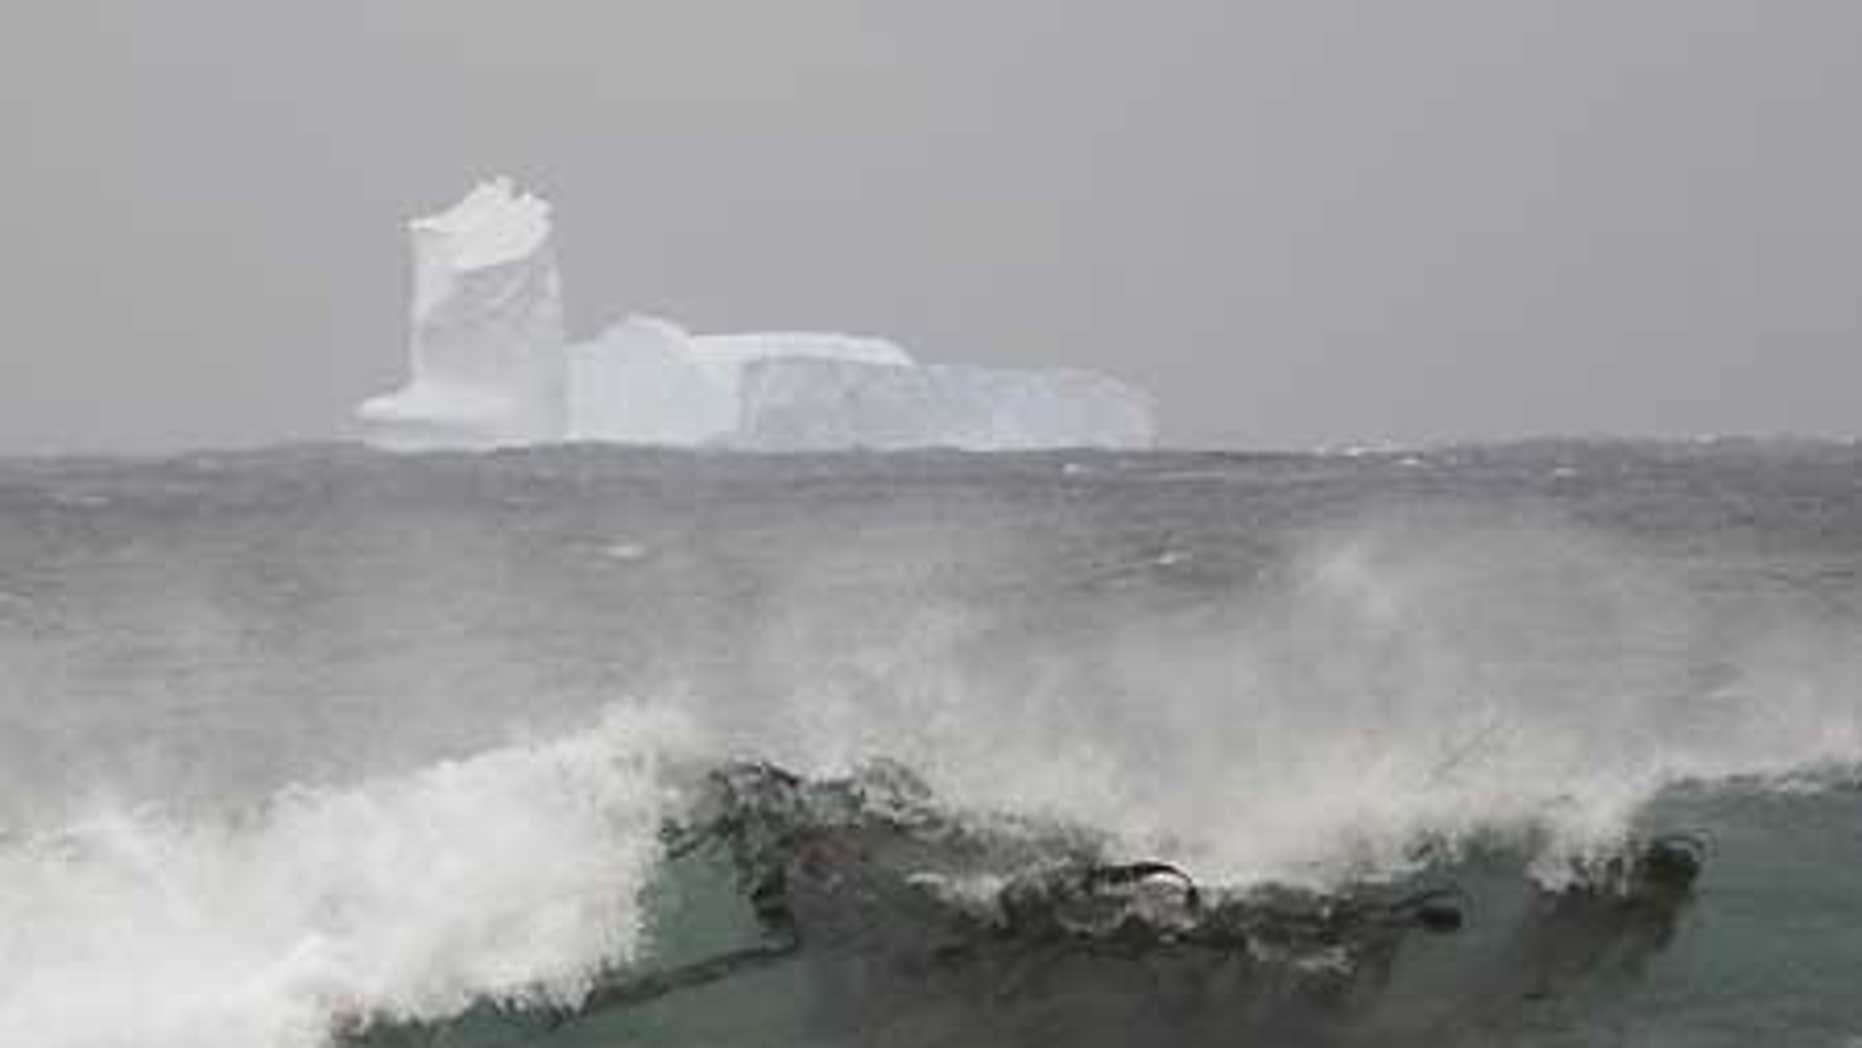 Nov. 16: An iceberg is seen at Sandy Bay on Macquarie Island's east coast, in the Southern Ocean 930 miles southeast of Tasmania, Australia.